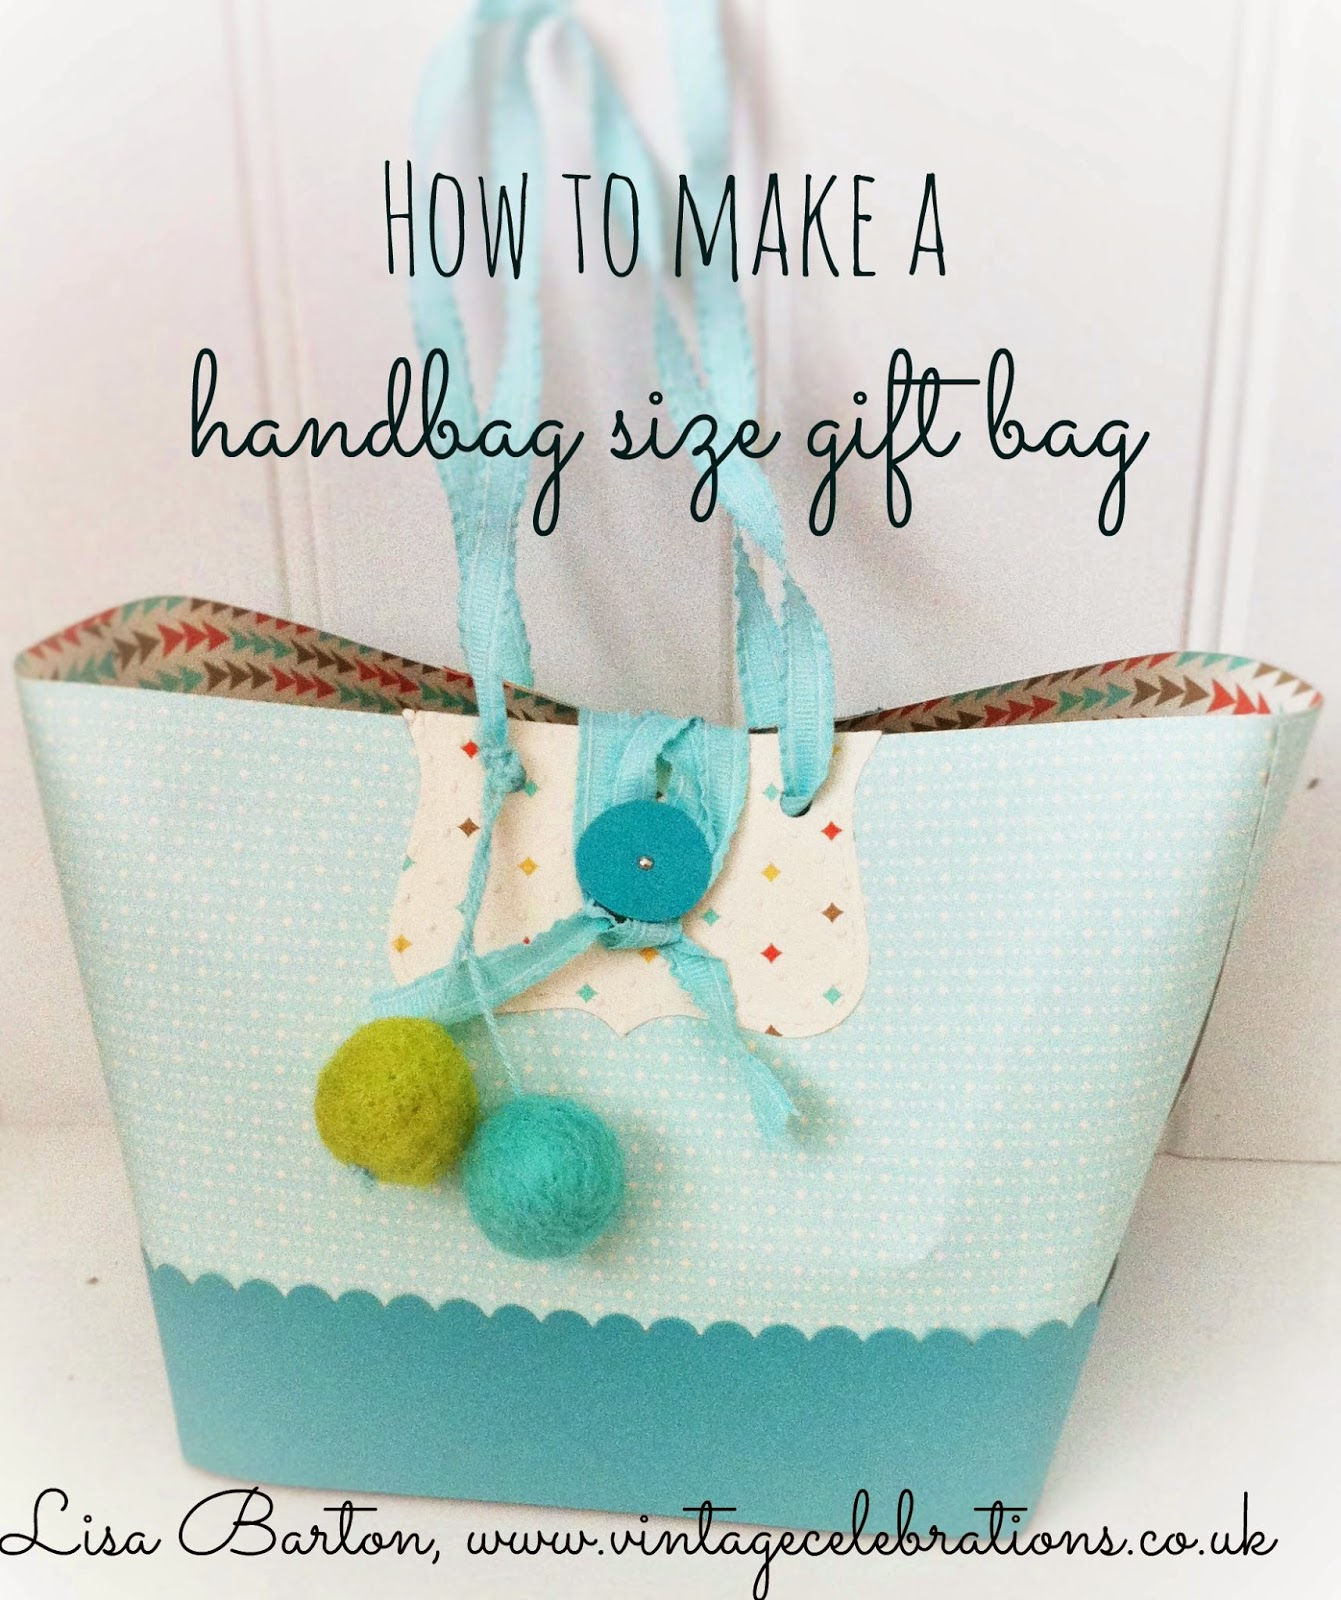 How to make a handbag size paper gift bag video tutorial by Lisa Barton, Vintage Celebrations